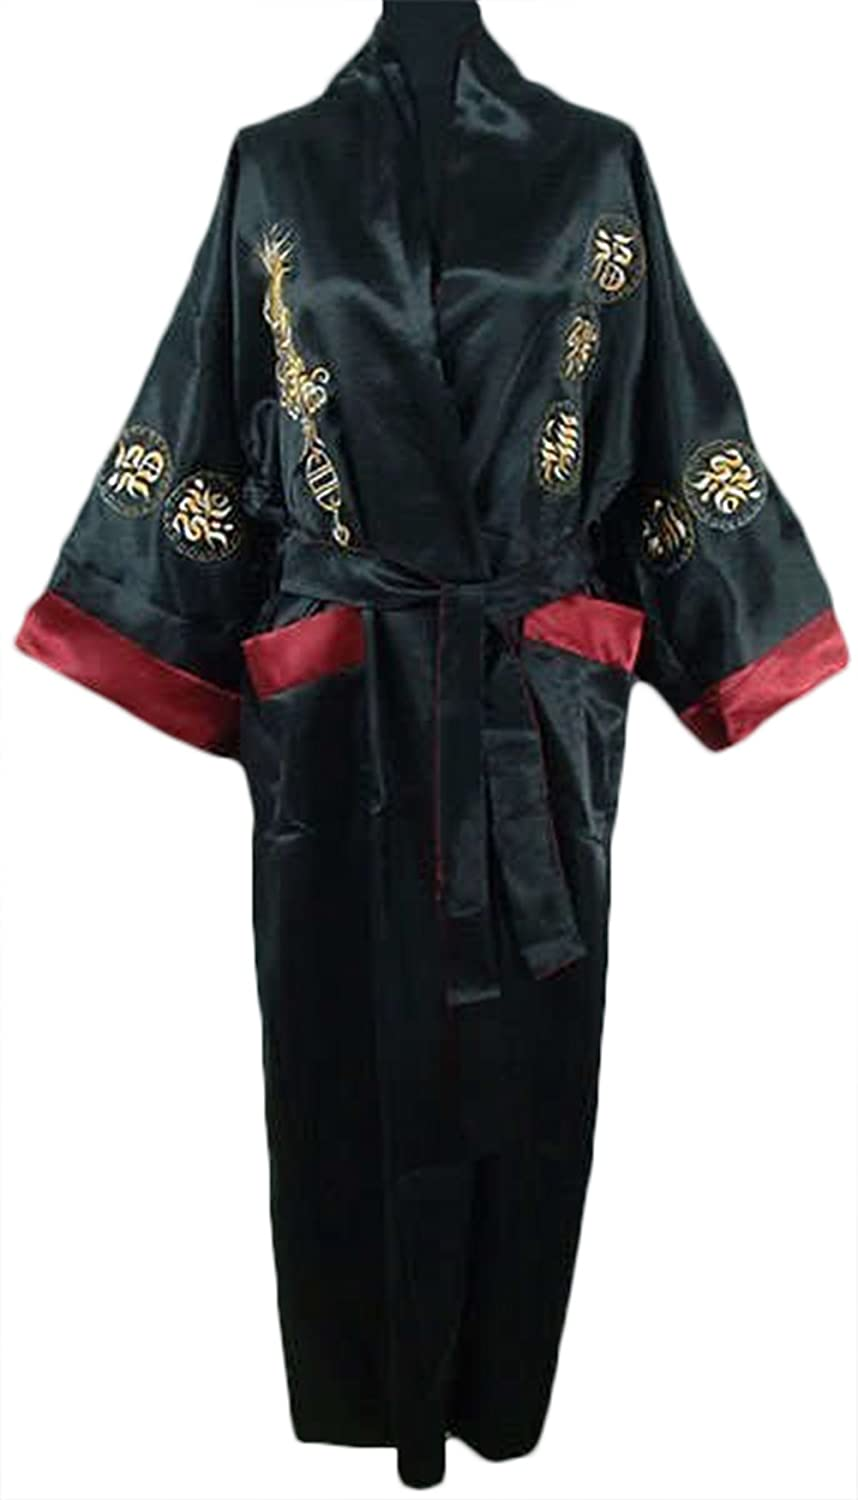 CK sky Womens Reversible Two-face pijamas Satin Embroidery Bath Gown Dragon Robe Burgundy Black at Amazon Womens Clothing store: